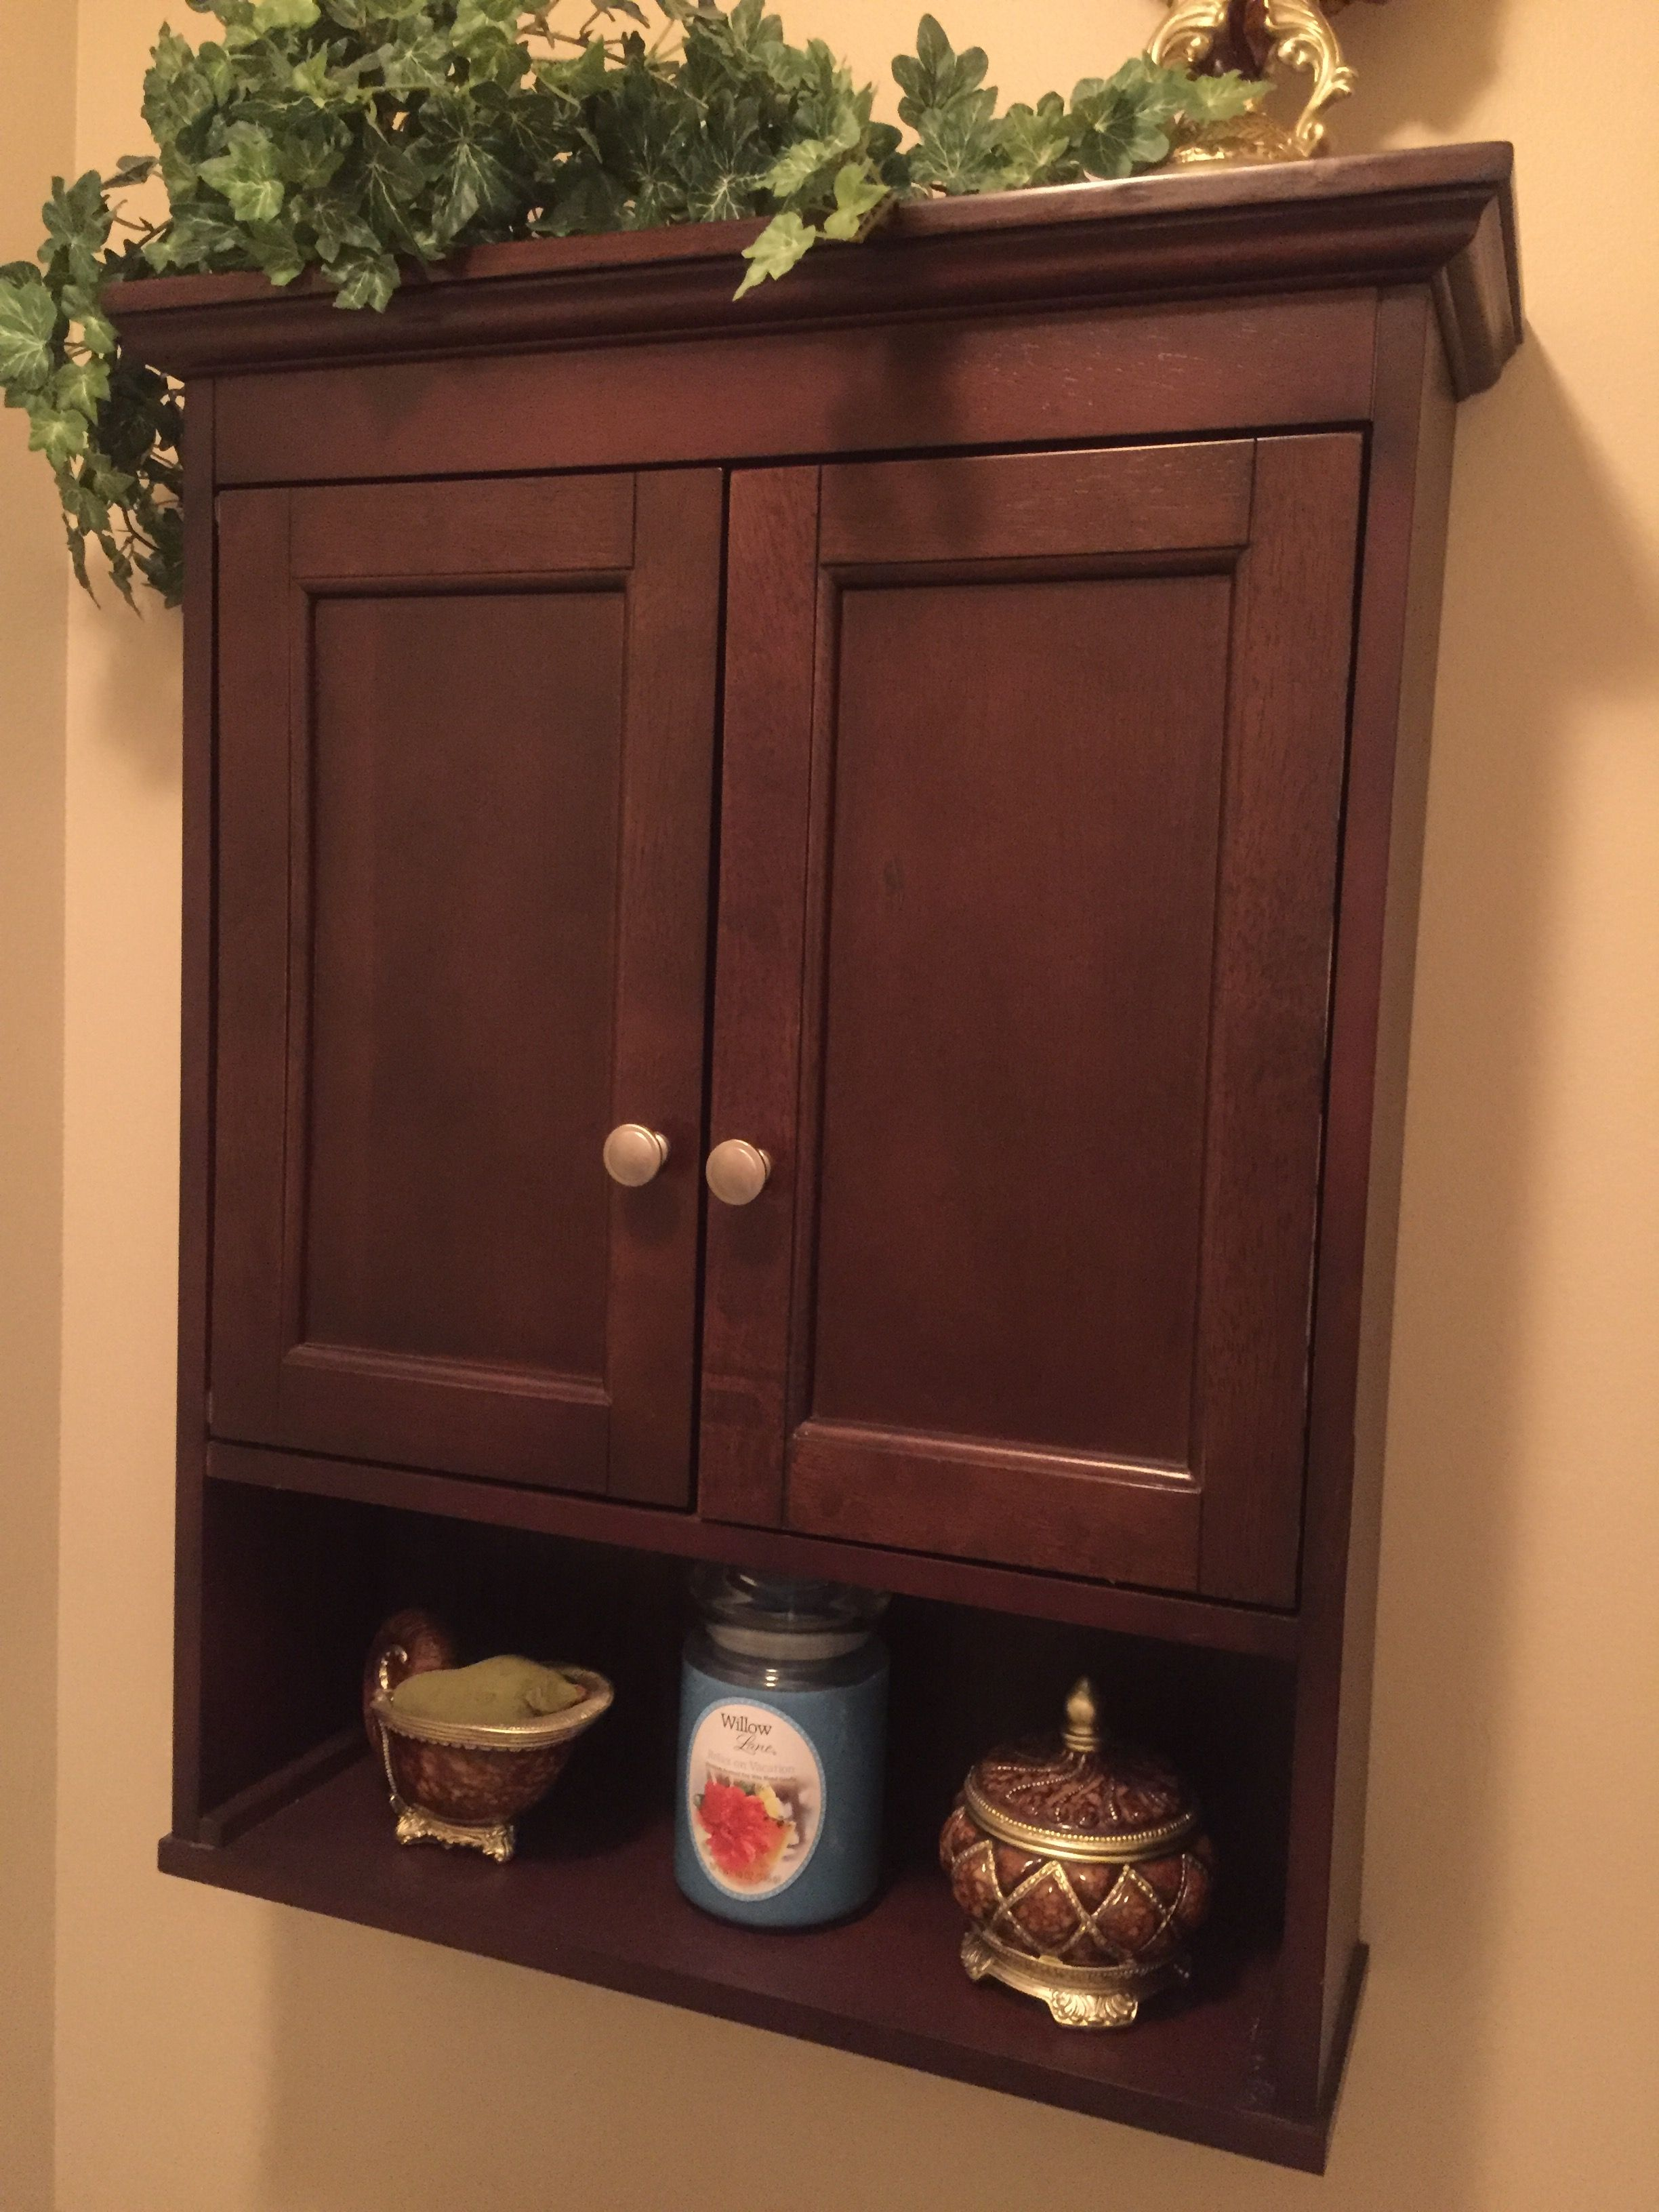 Bathroom wall cabinet, purchased on clearance for $12 ...